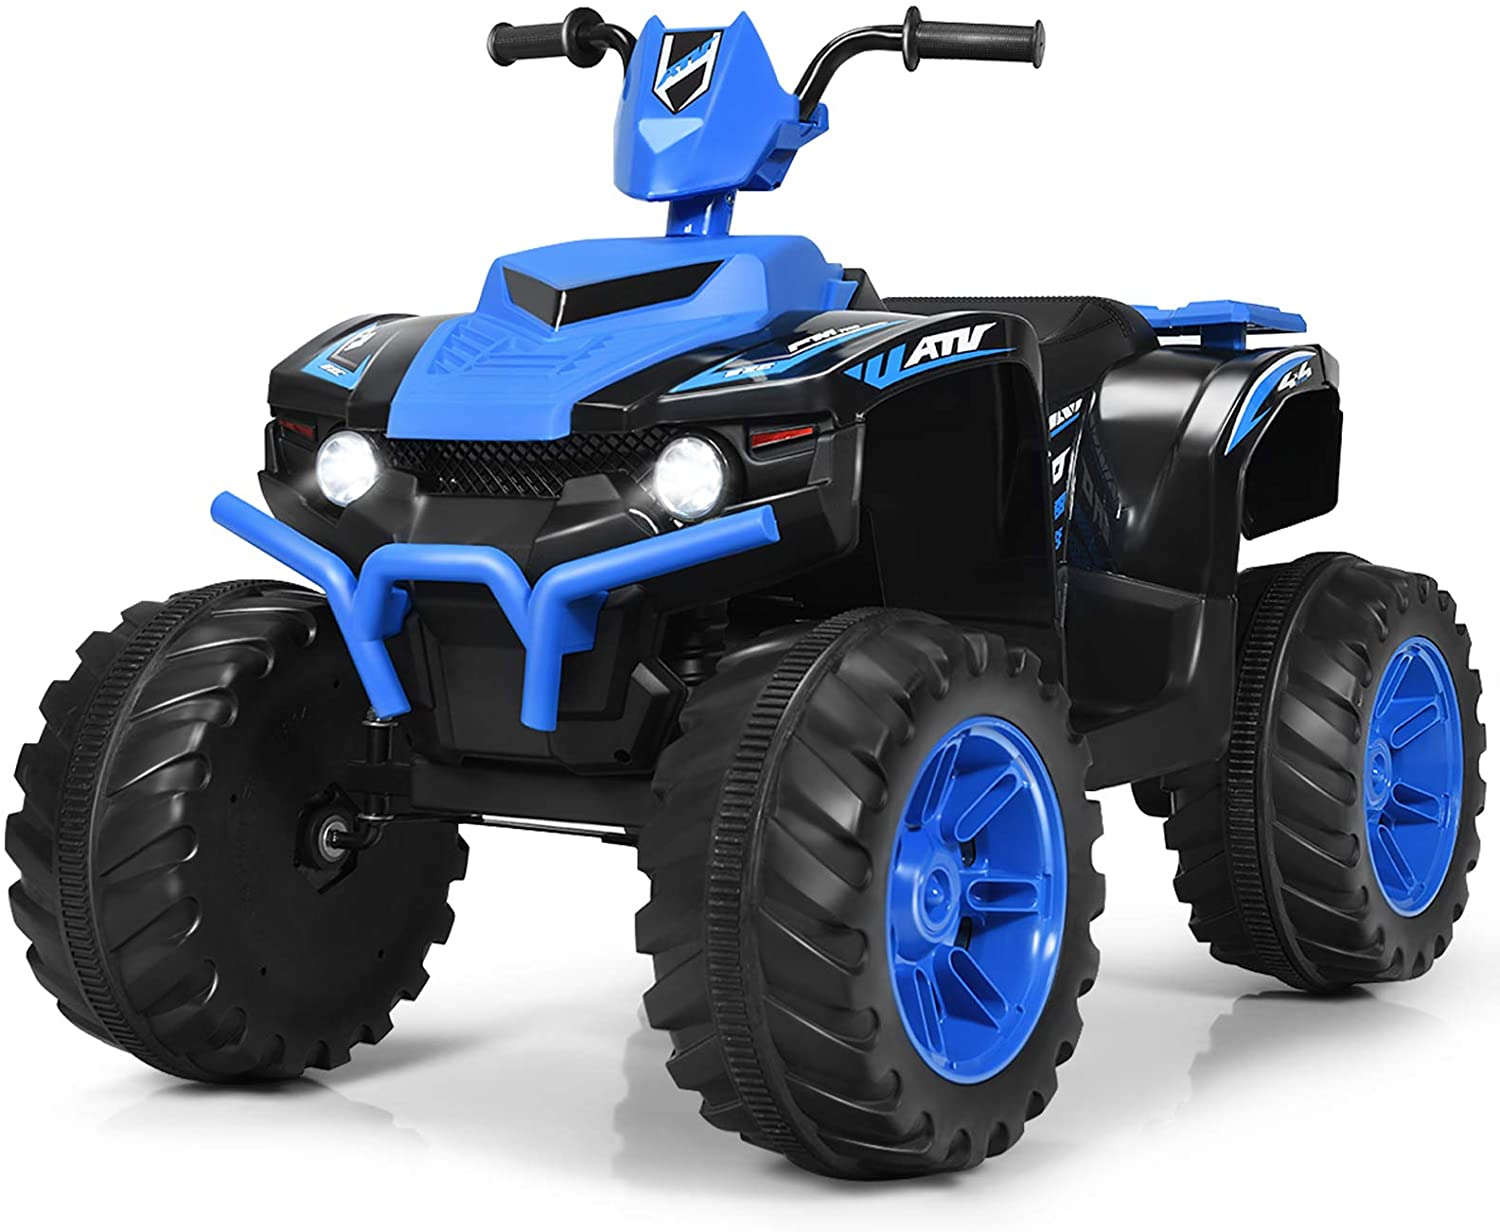 Costzon Ride on ATV, 12V